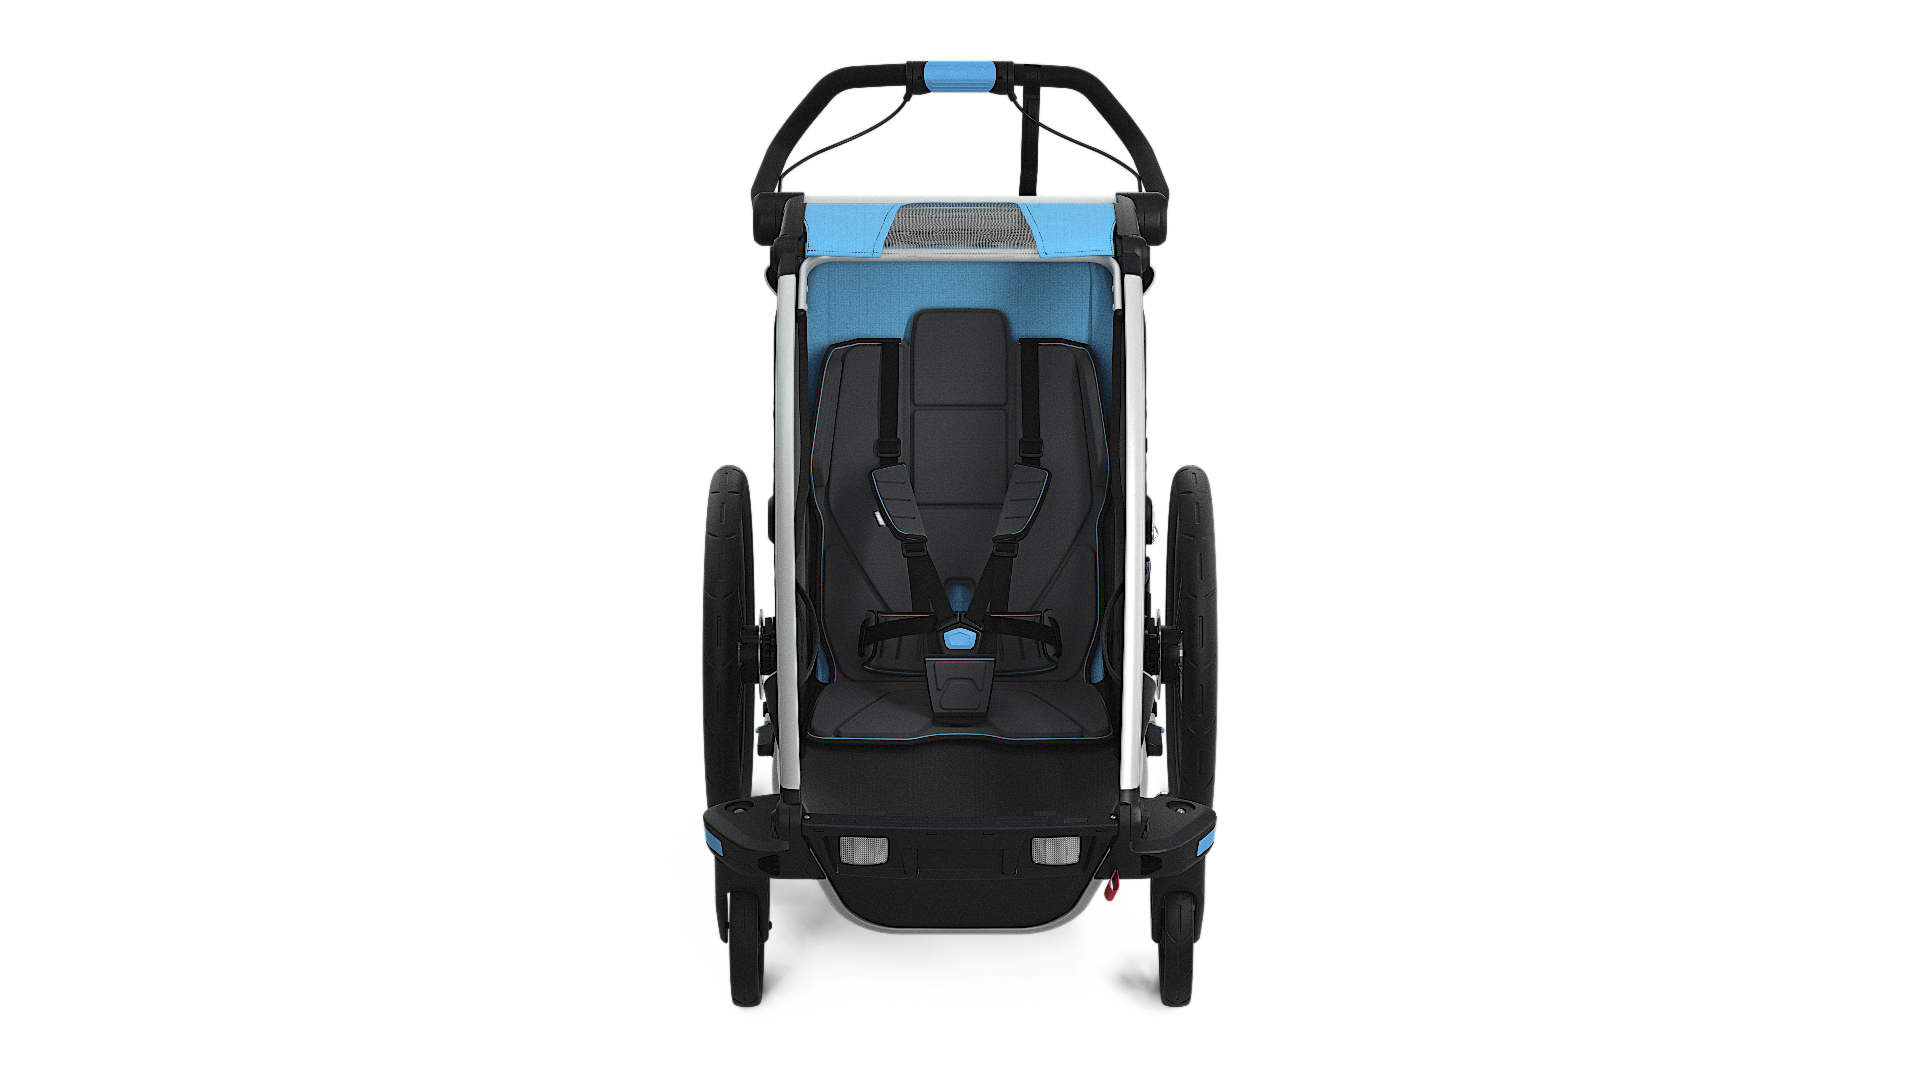 Thule_Chariot_Sport1_ThuleBlue_Strolling_FRONT_10201001